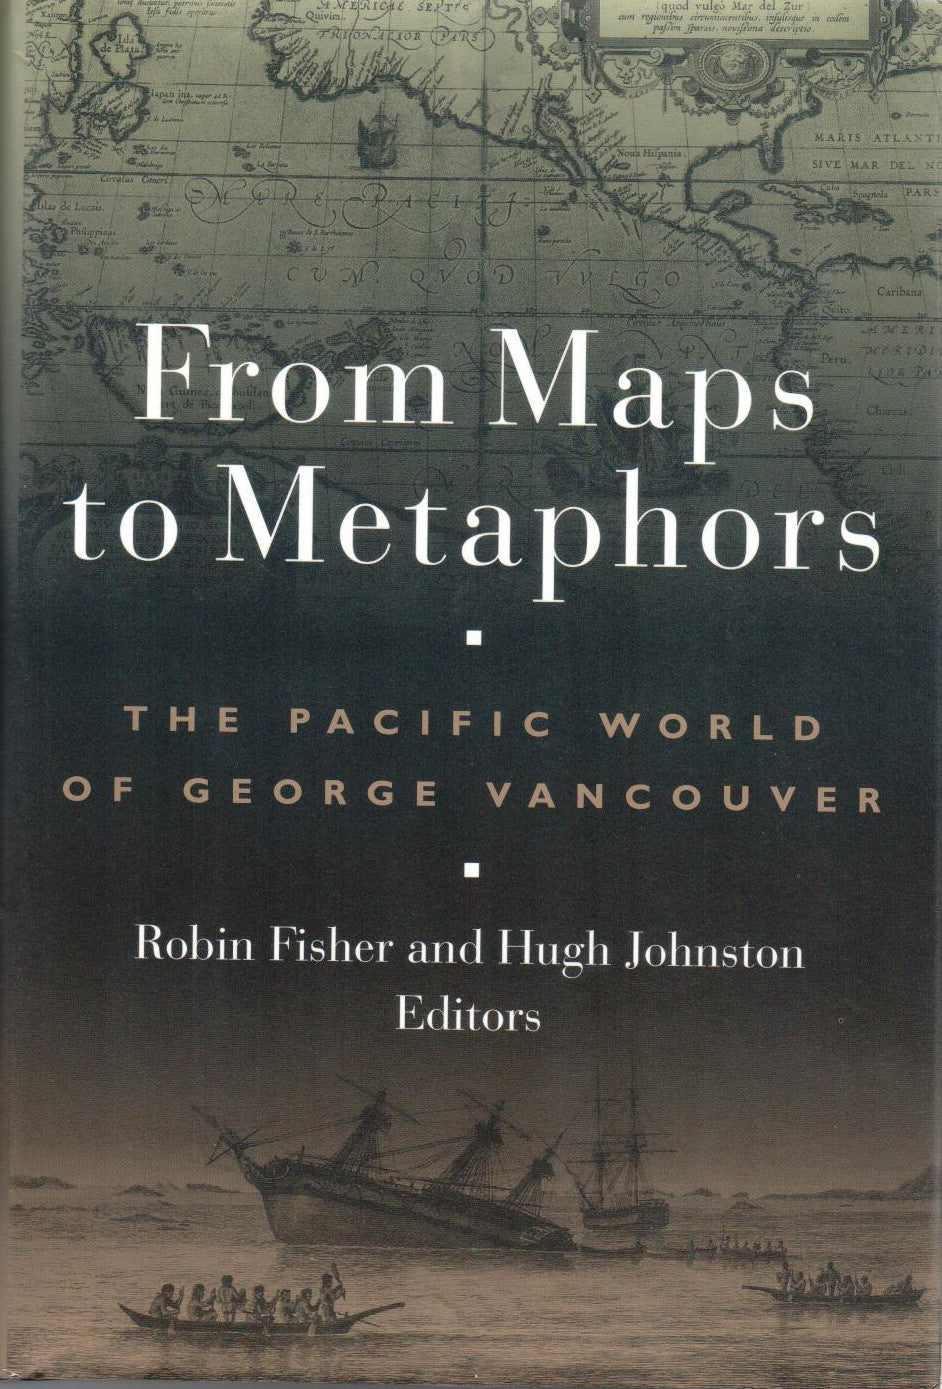 From Maps to Metaphors; The Pacific World of George Vancouver, Edited by Robin Fisher and Hugh Johnston - Washington State Historical Society